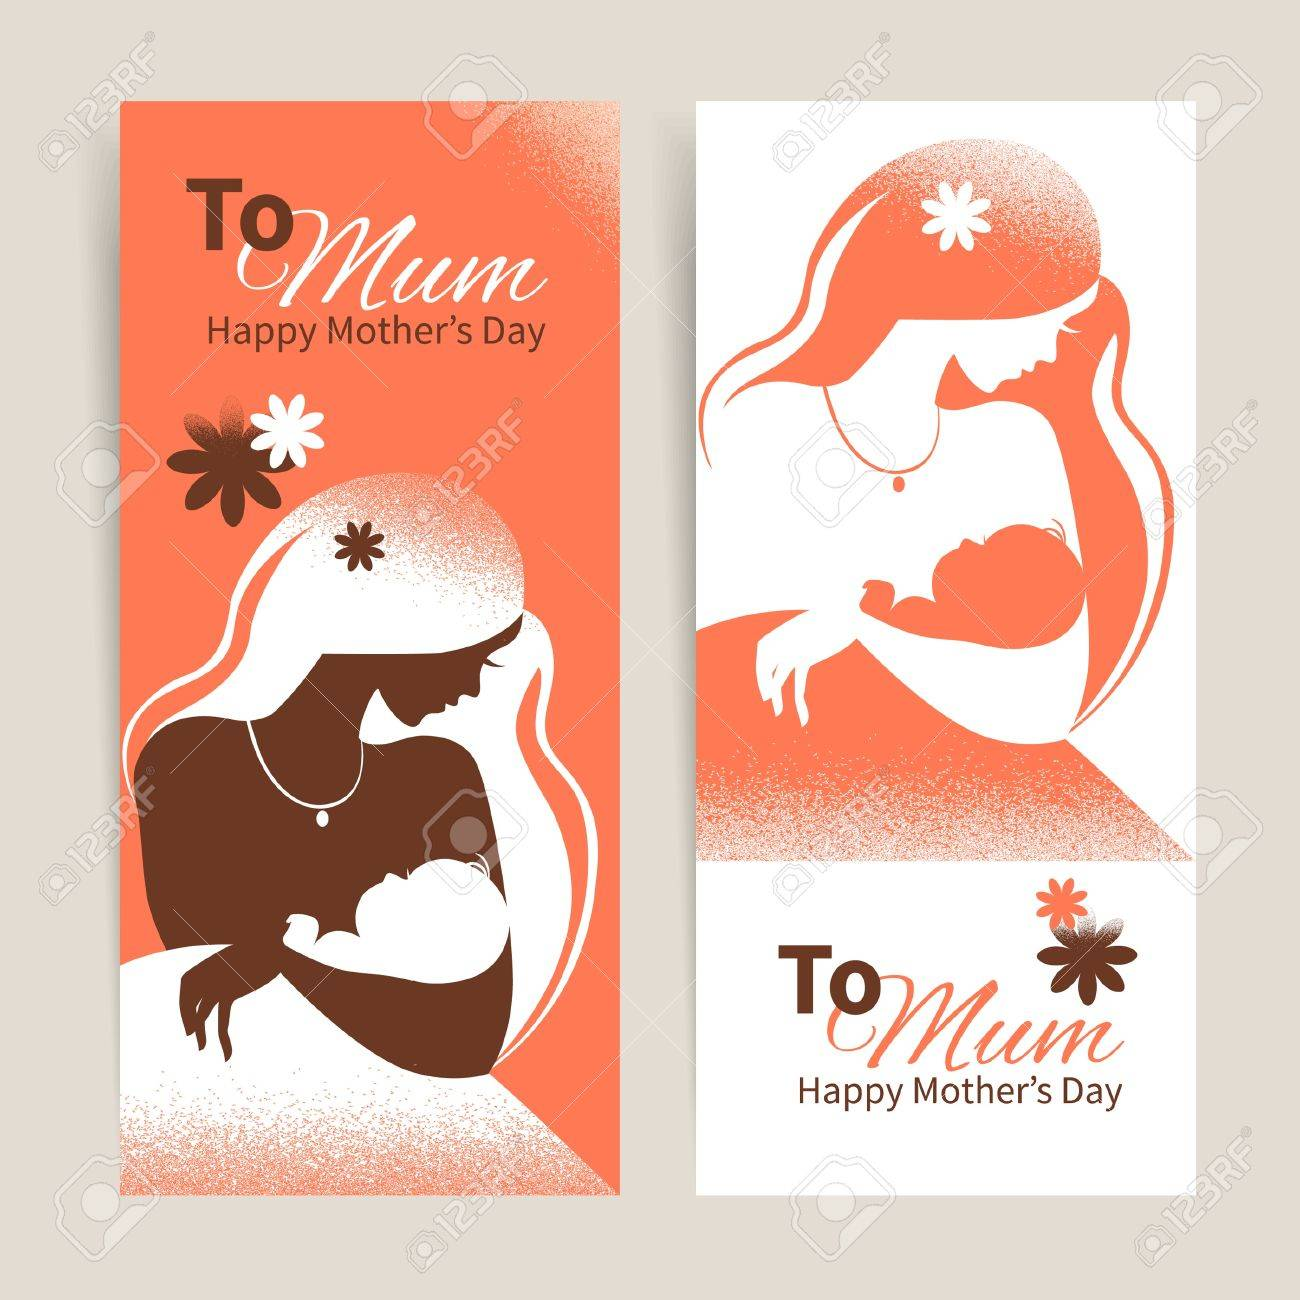 Banners with with beautiful silhouette of mother and baby in retro style. Cards of Happy Mother's Day Stock Vector - 18815590